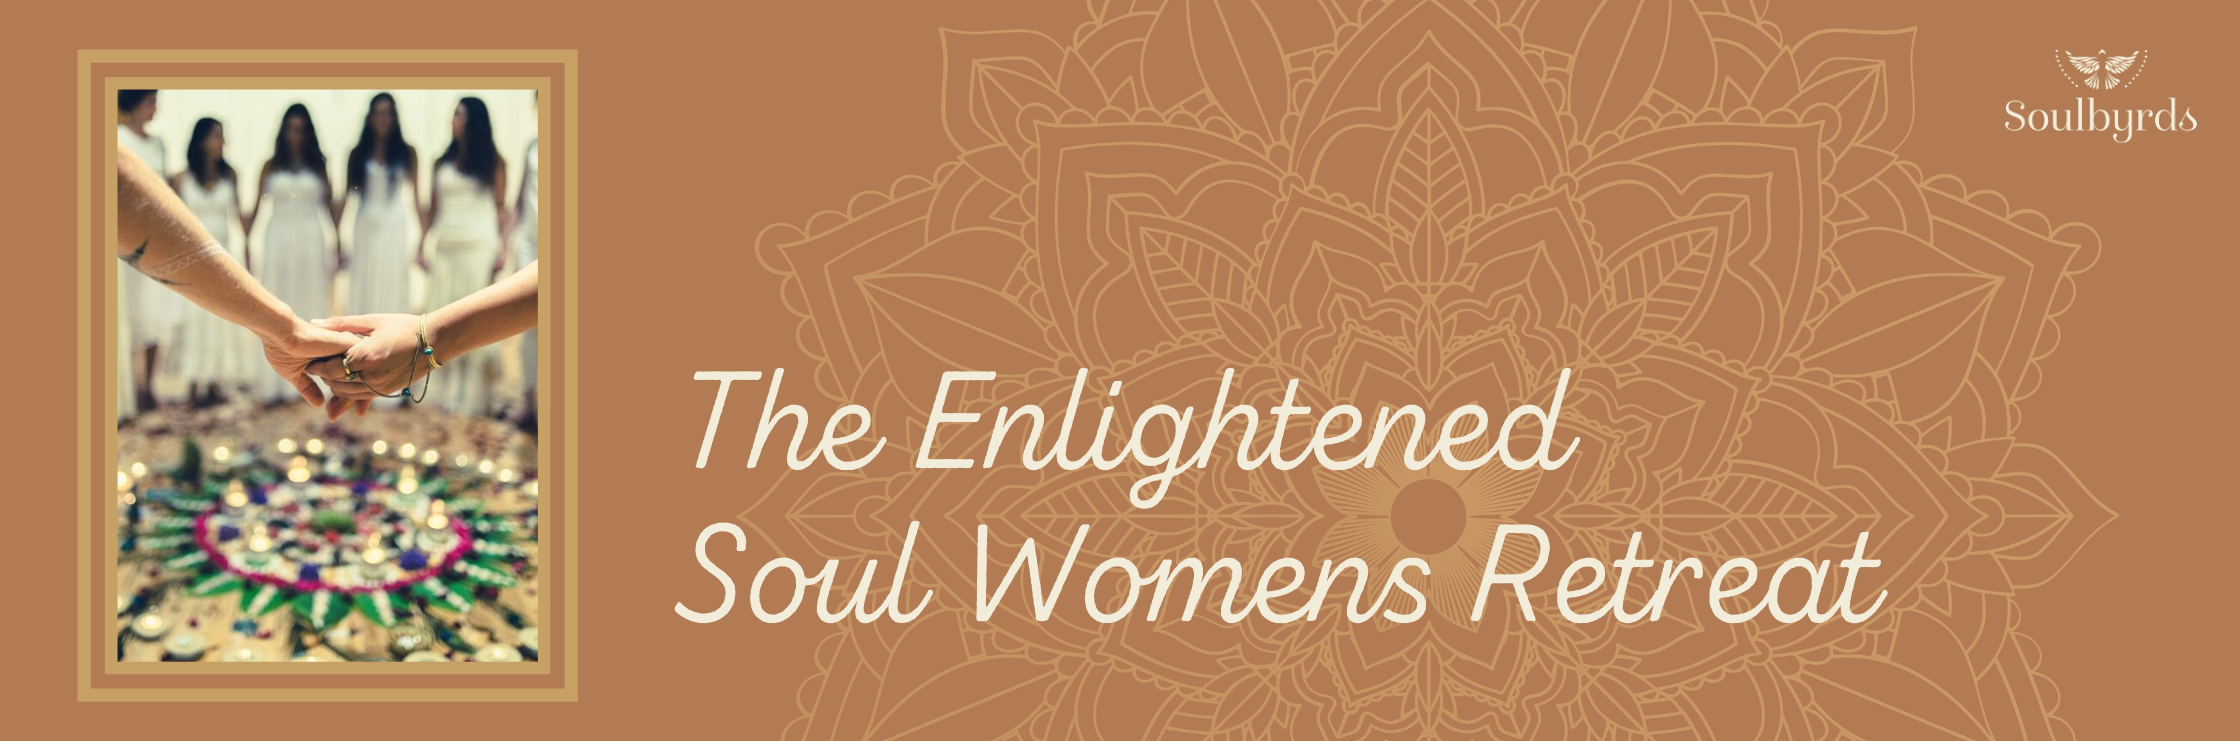 The Enlightened Soul Womens Retreat 6